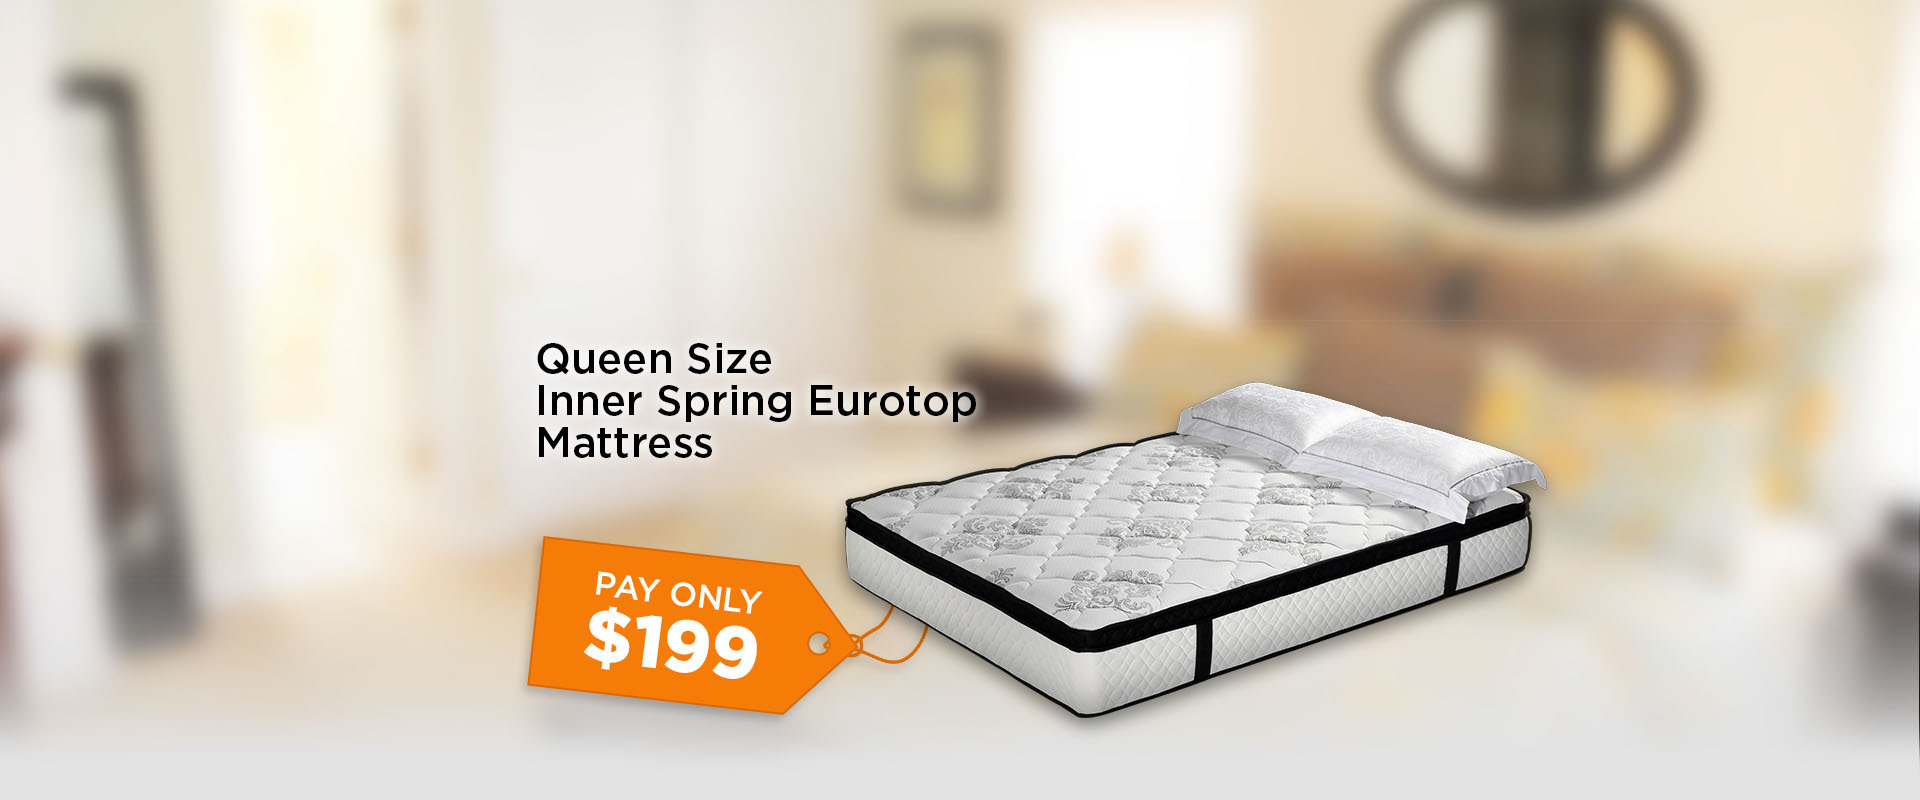 Slide-queen-size-inner-spring-eurotop-mattress